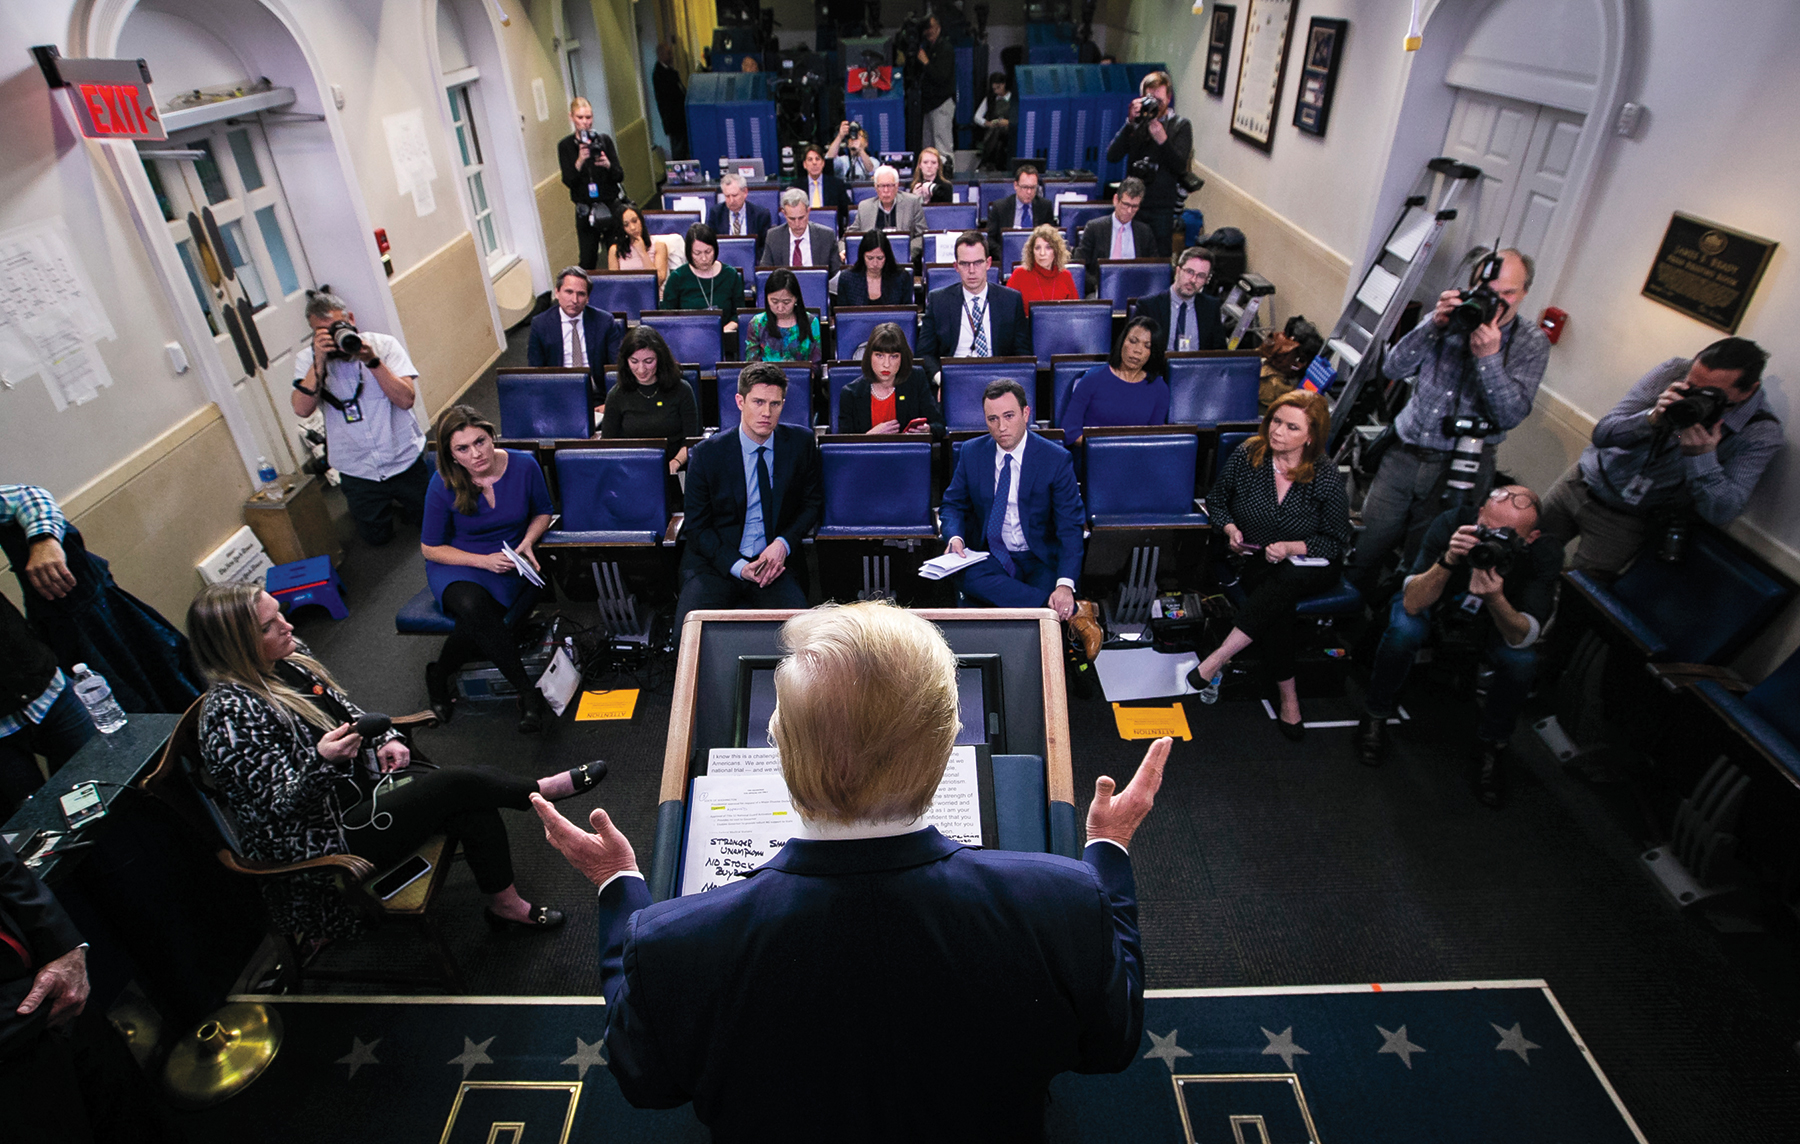 President Donald Trump speaks during a coronavirus task force news conference in the White House briefing room in Washington, March 22, 2020. (Al Drago/The New York Times)